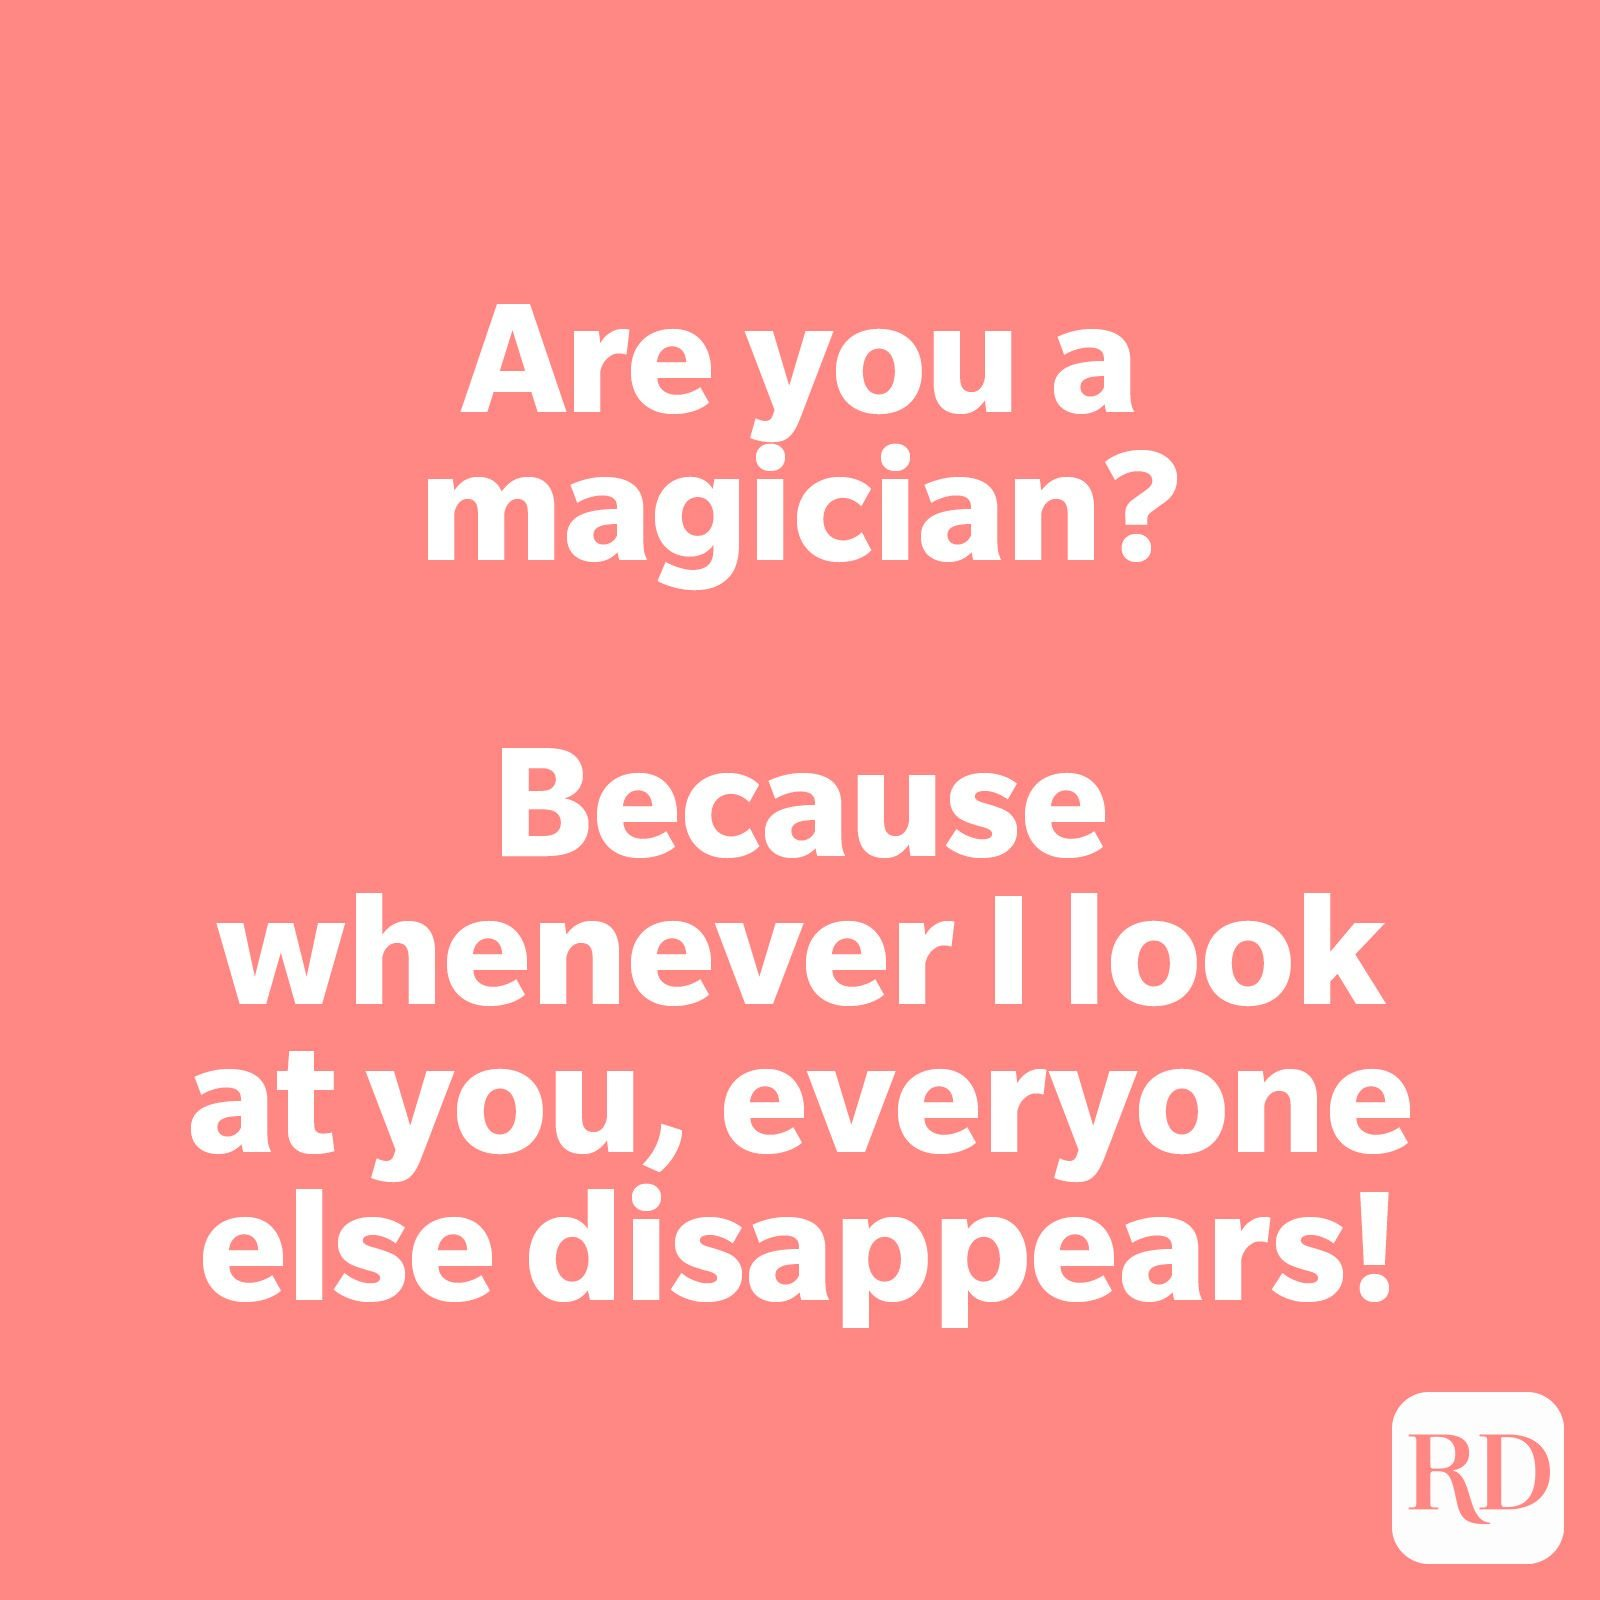 Are you a magician? Because whenever I look at you, everyone else disappears!